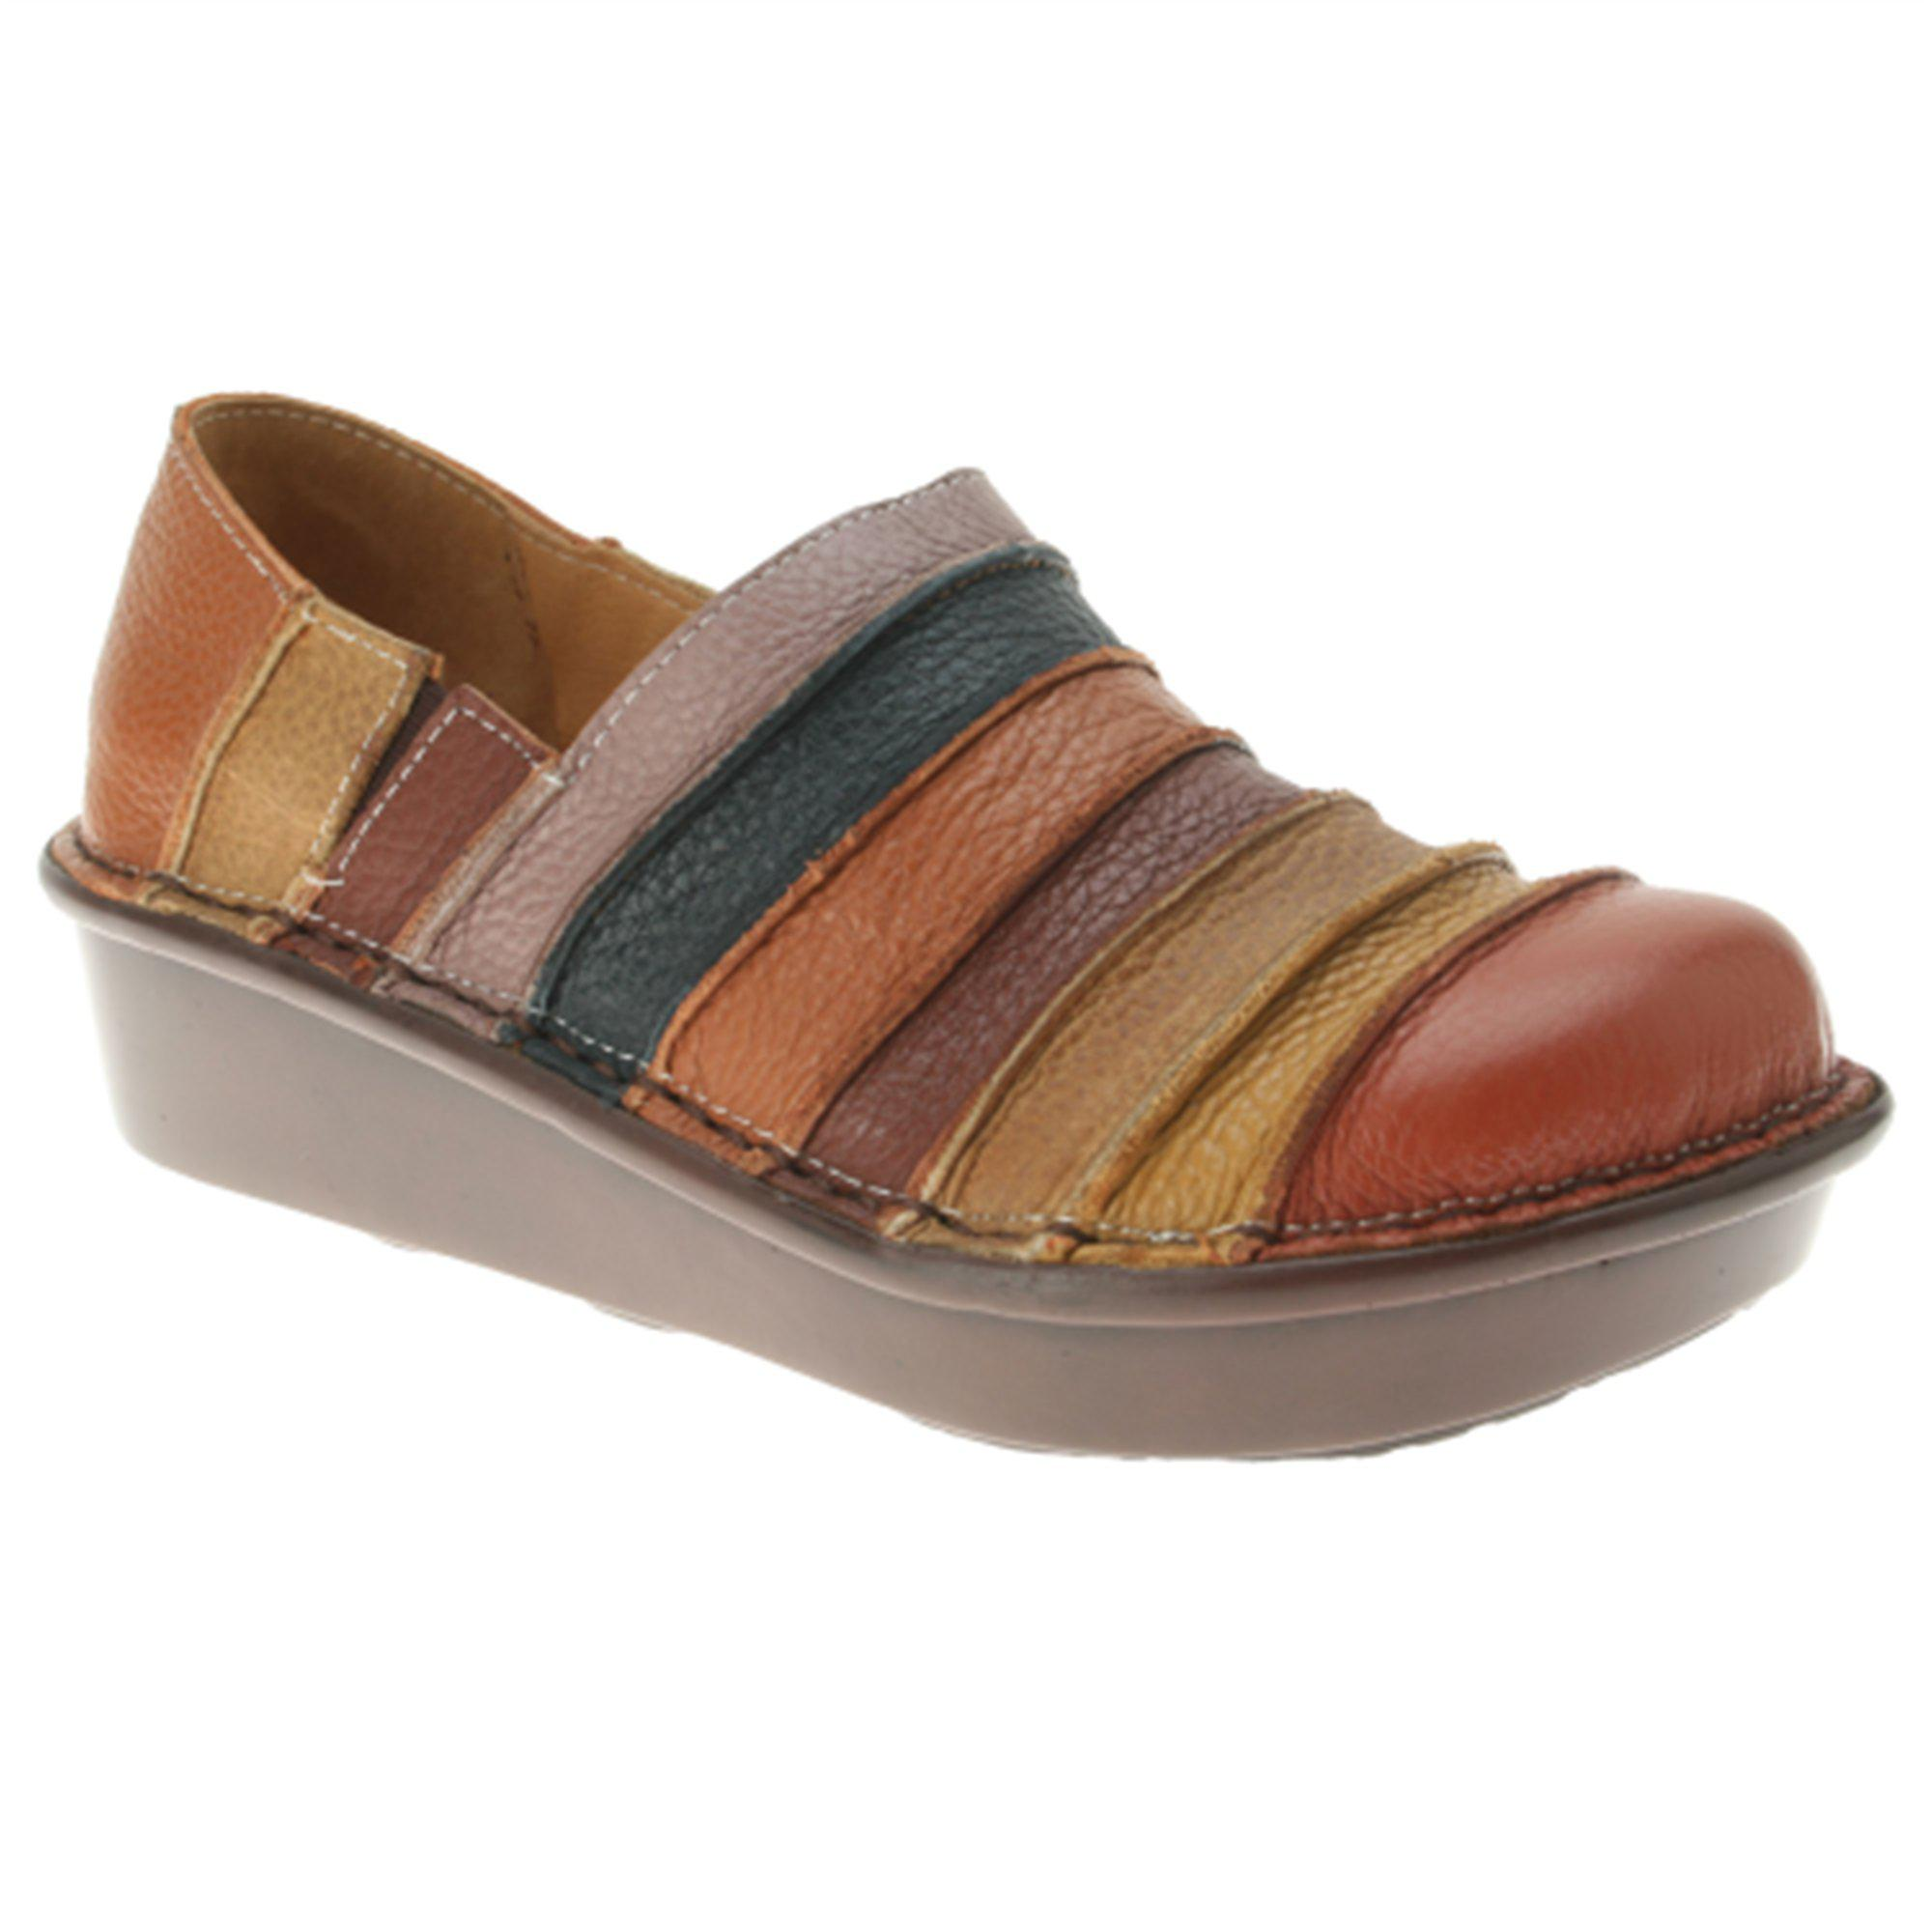 Spring Step Firefly Women's ... Platform Shoes shopping online for sale KTvWcIZZqX